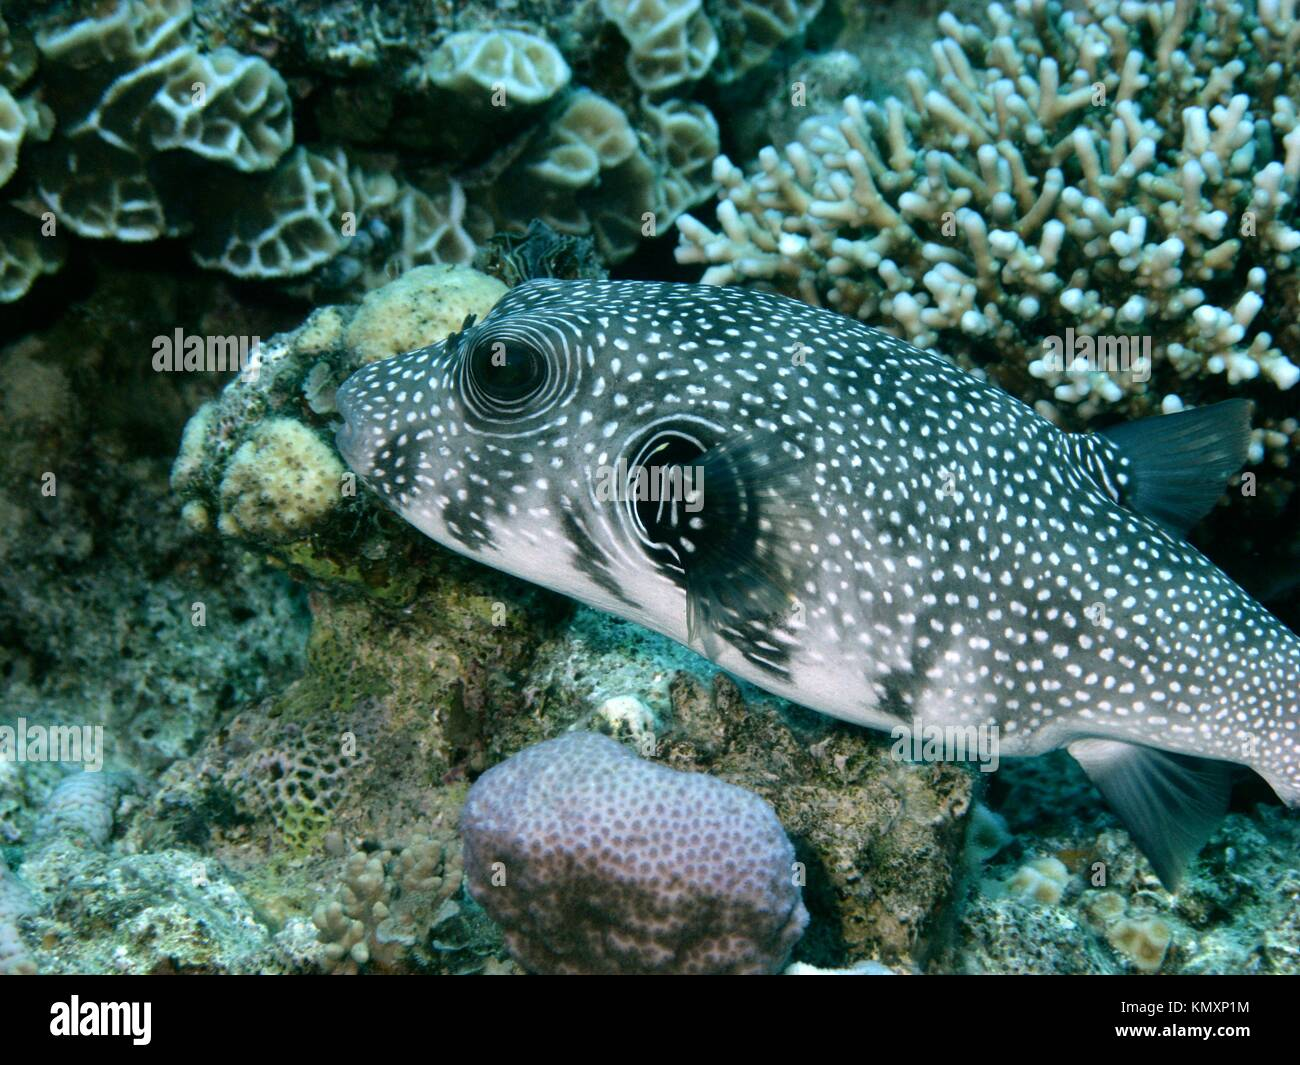 V9EG0919  Pufferfish, a tropical coralfish  Location: Red Sea - Stock Image